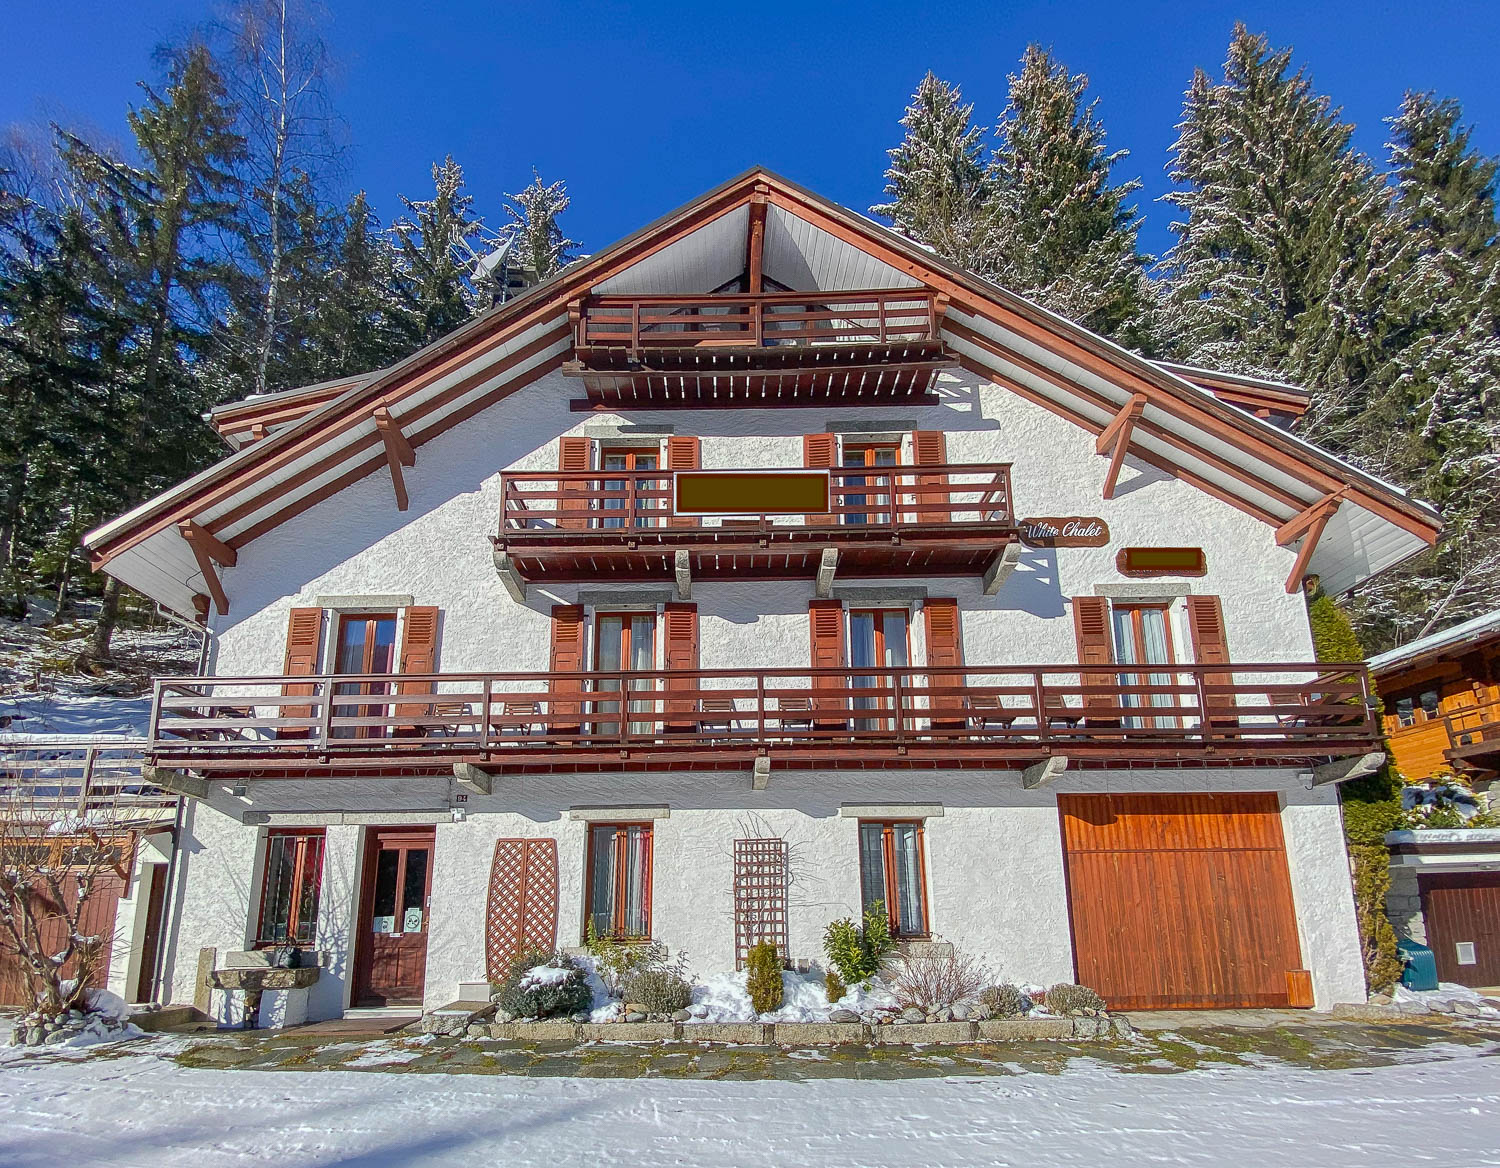 Chalet for sale in Chamonix - Argentière area